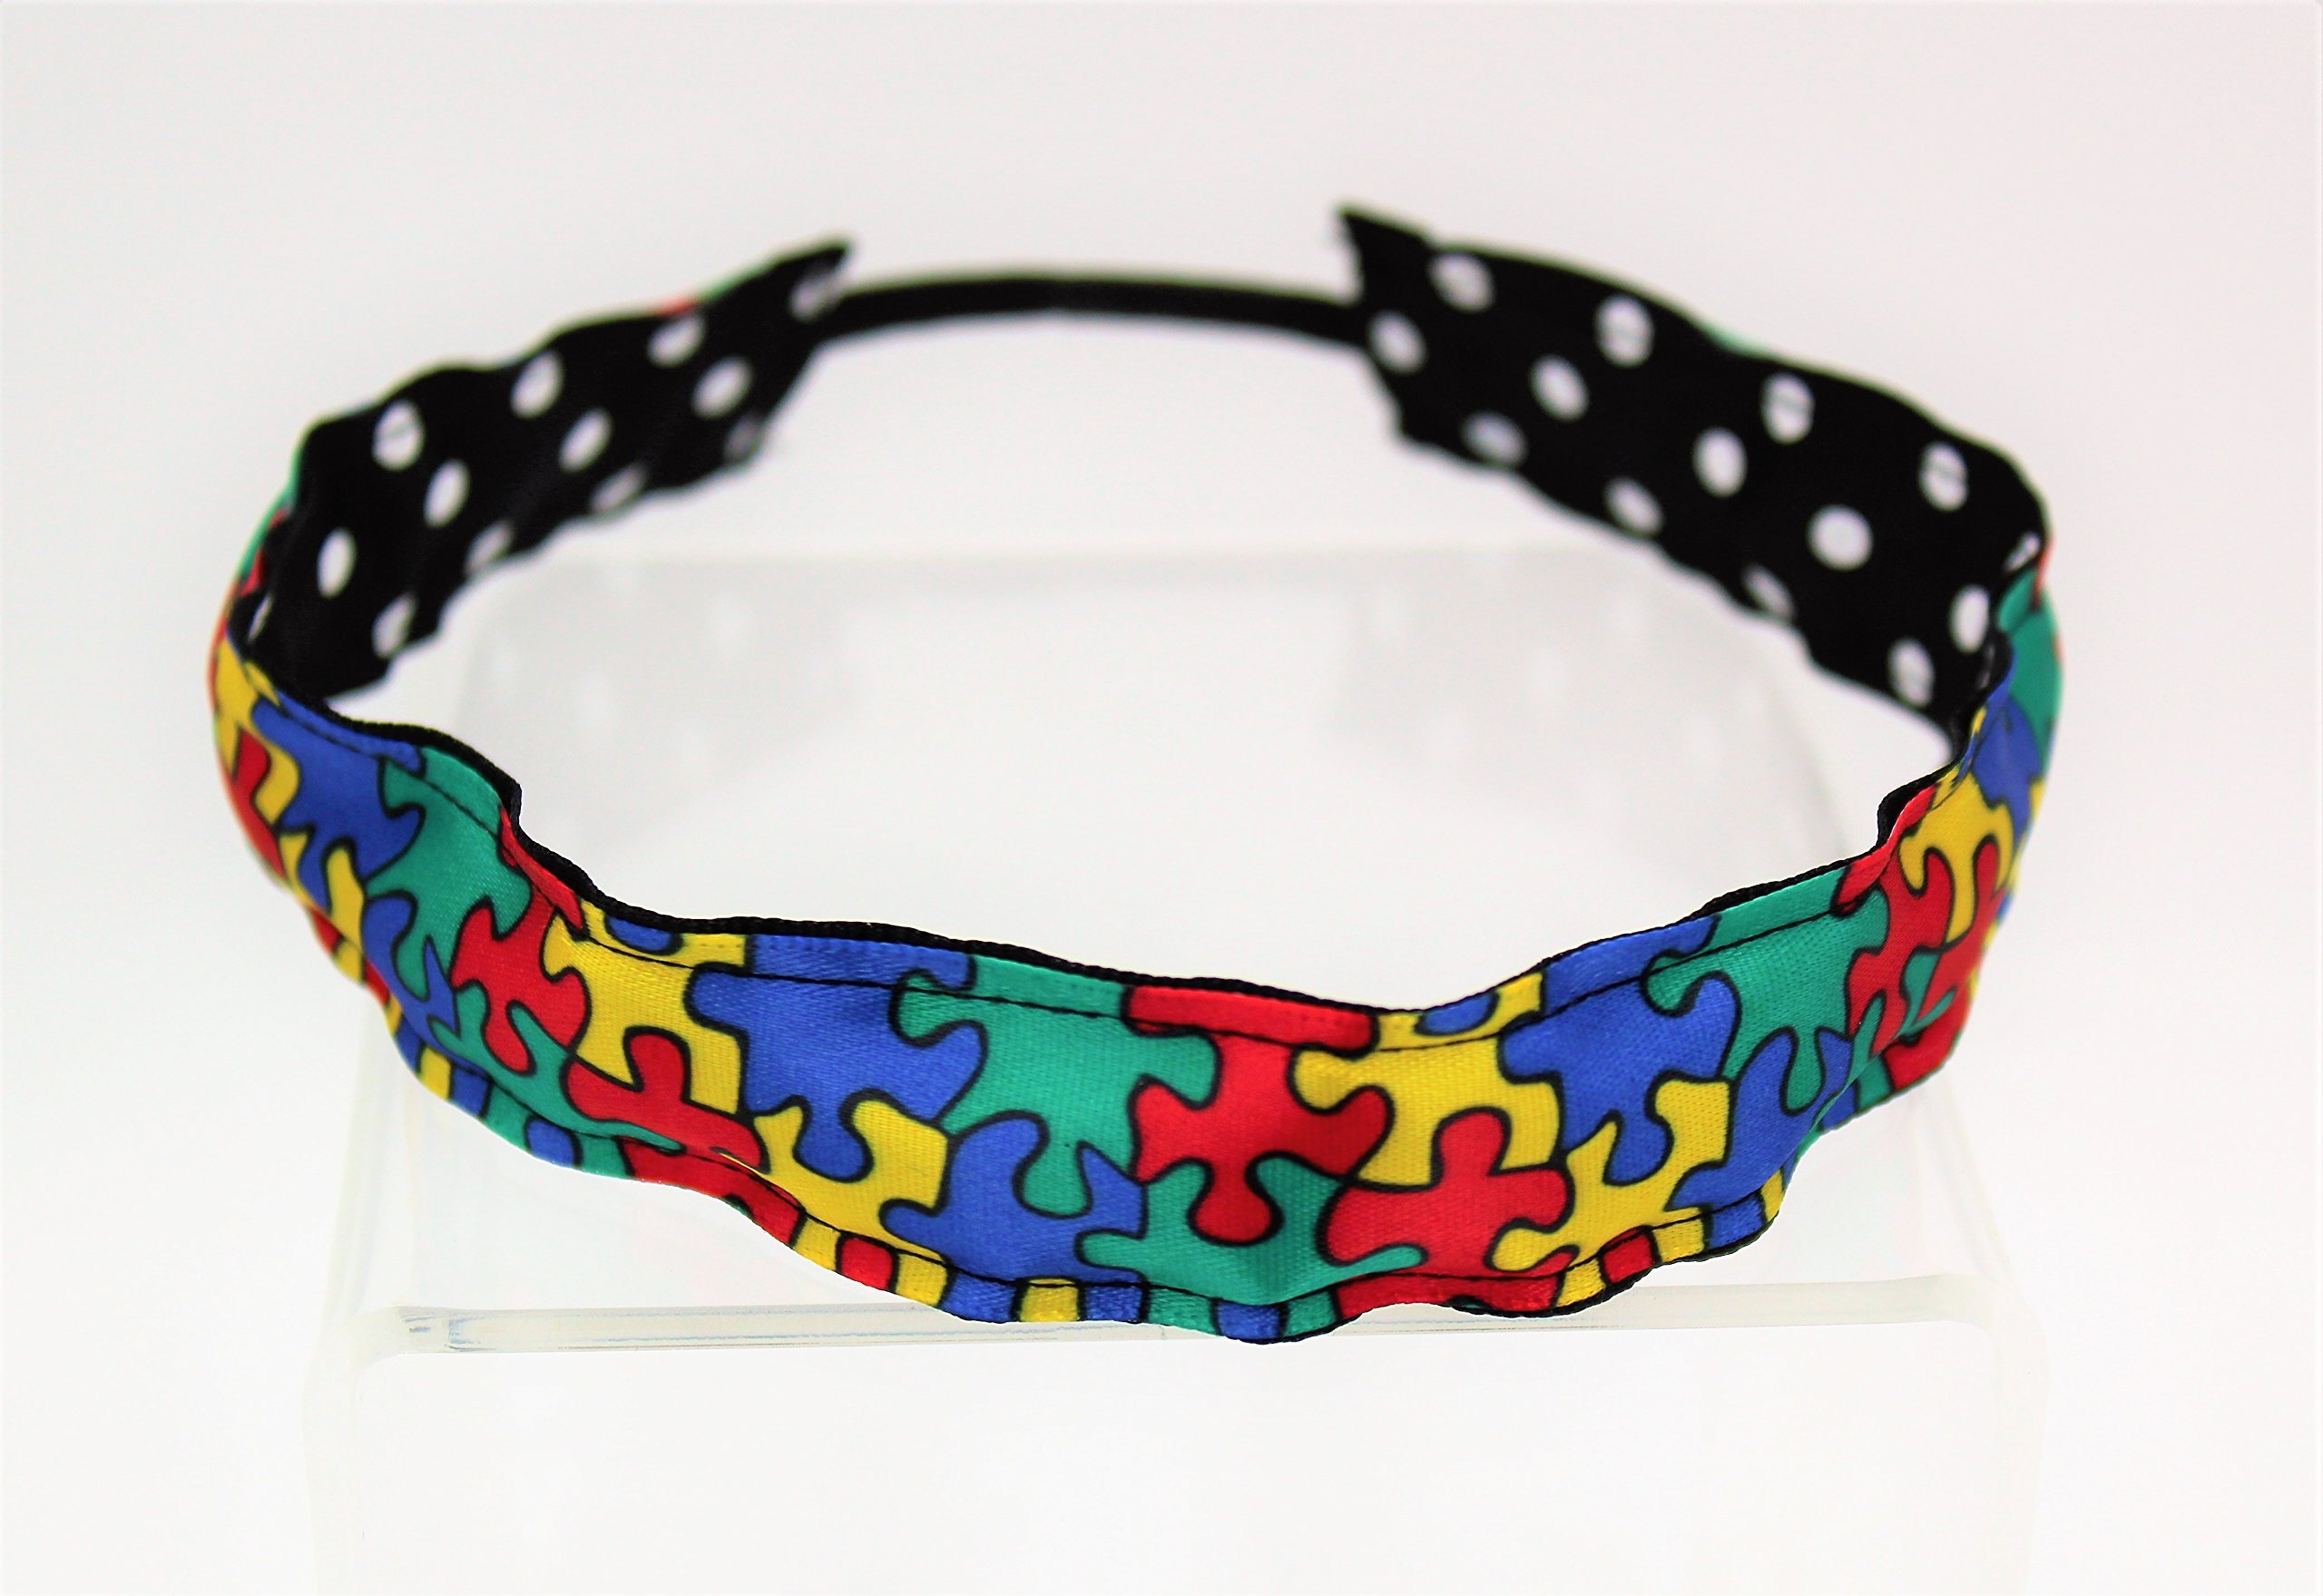 Autism Awareness Puzzle Ribbon Stretch Reversible Sports Elastic Headband Black with White Dots